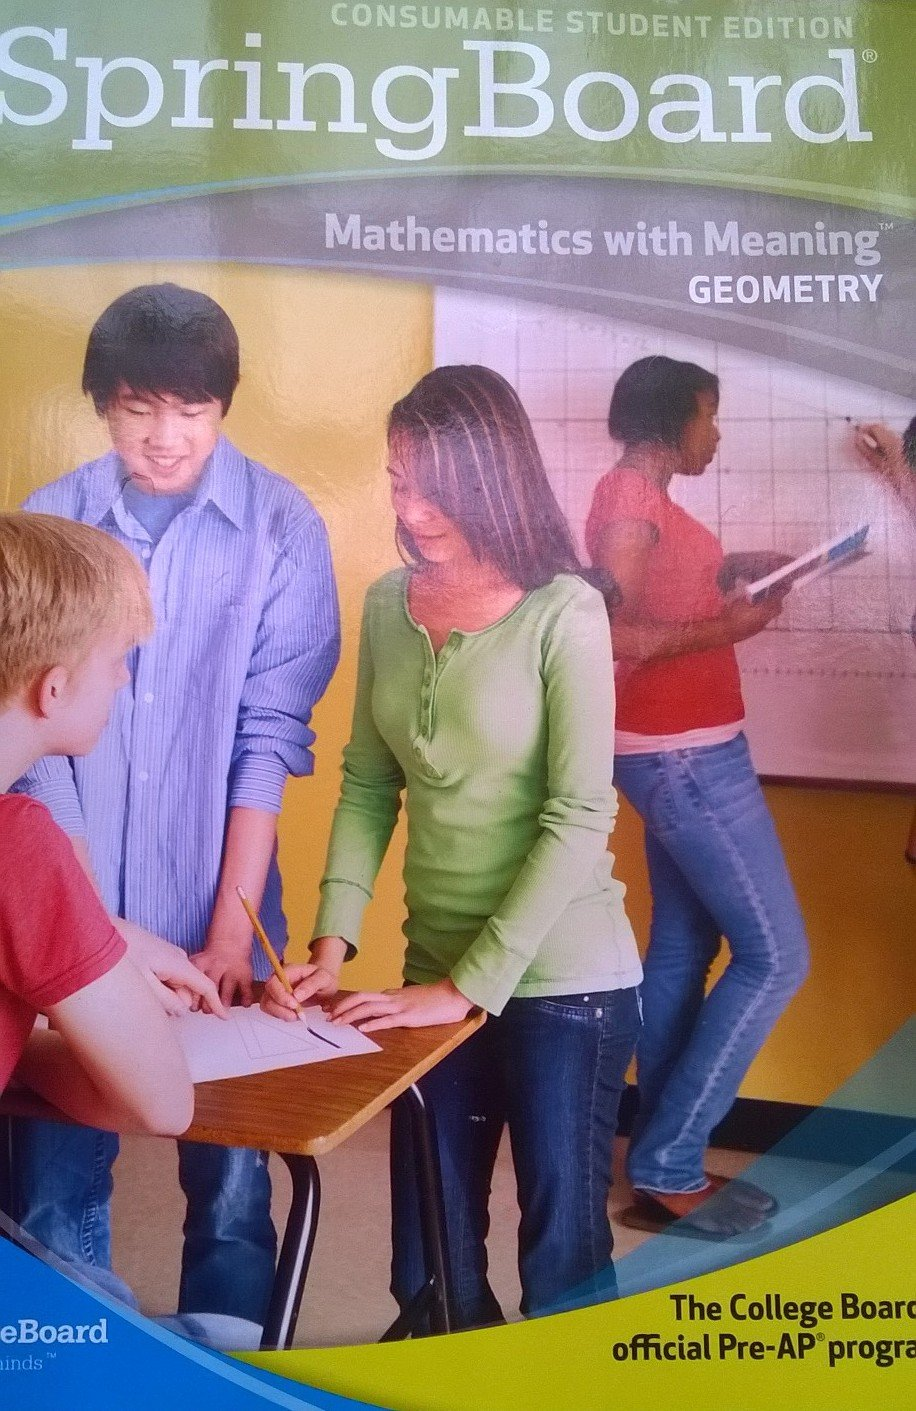 SpringBoard: Mathematics with Meaning - Geometry ebook